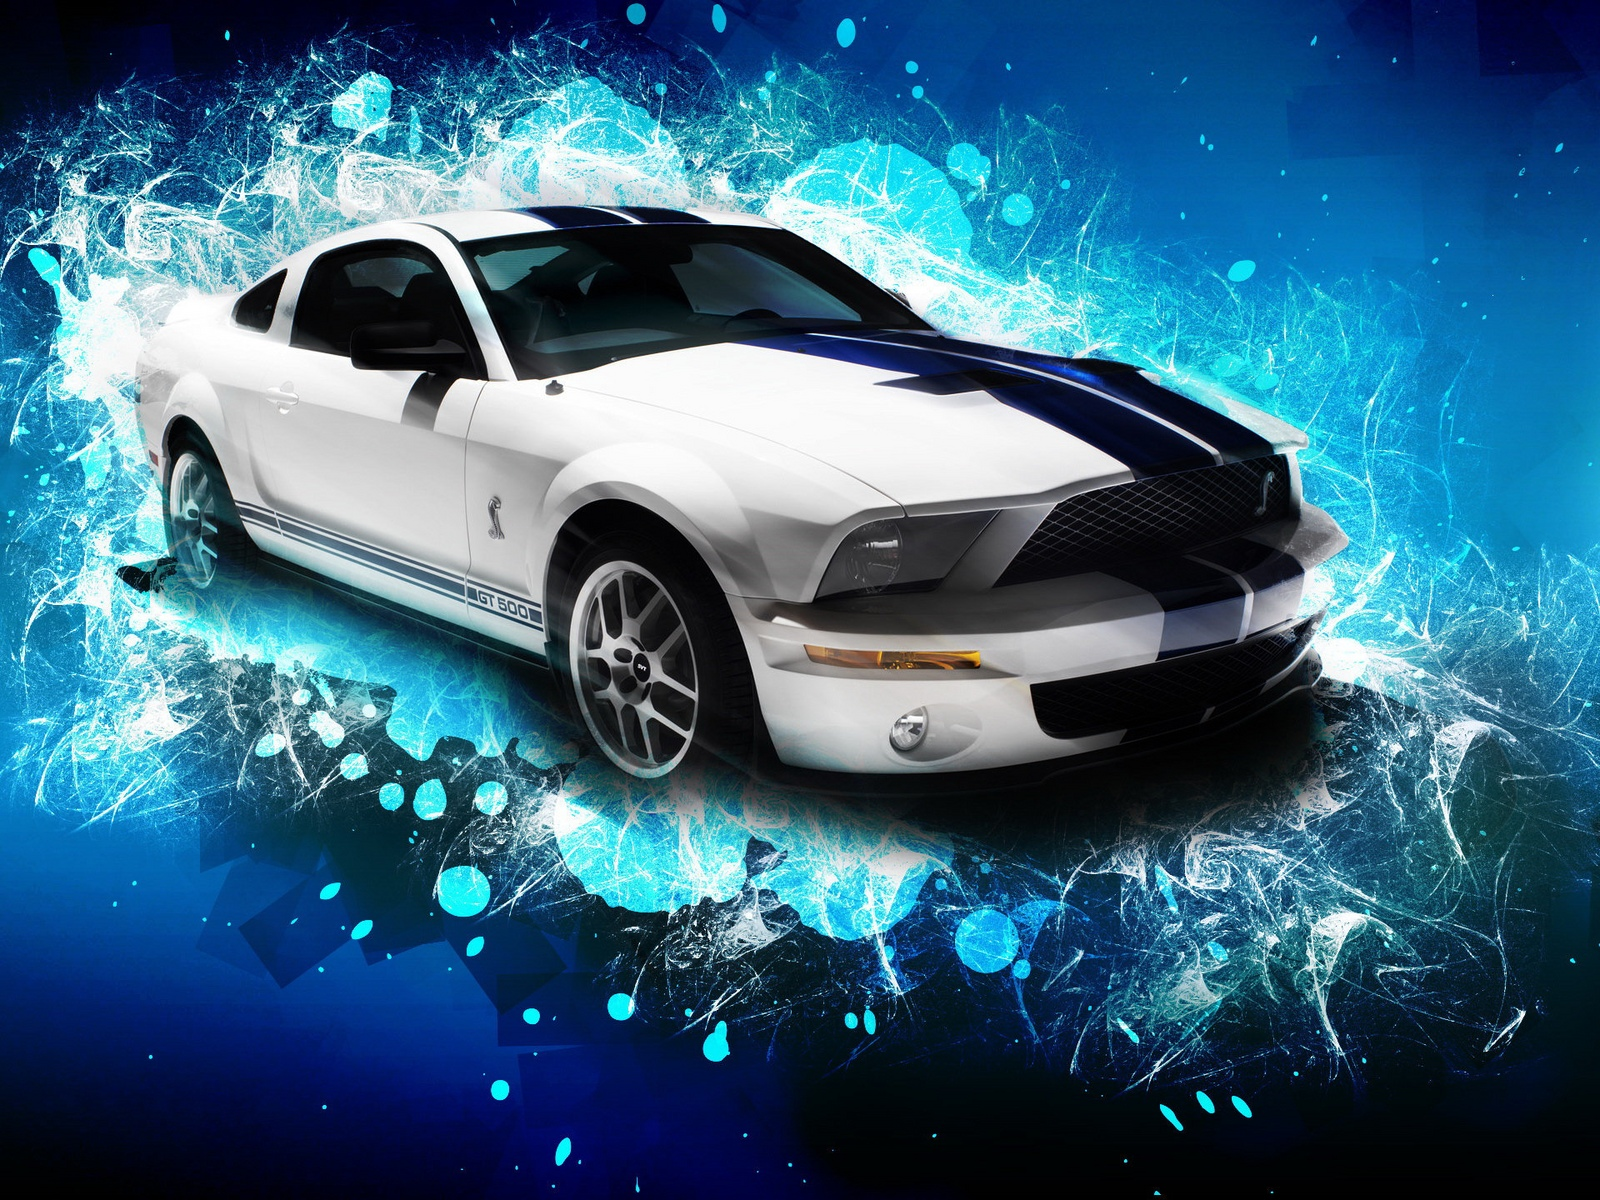 Car Wallpapers Backgrounds Hd: Cool Car Wallpapers